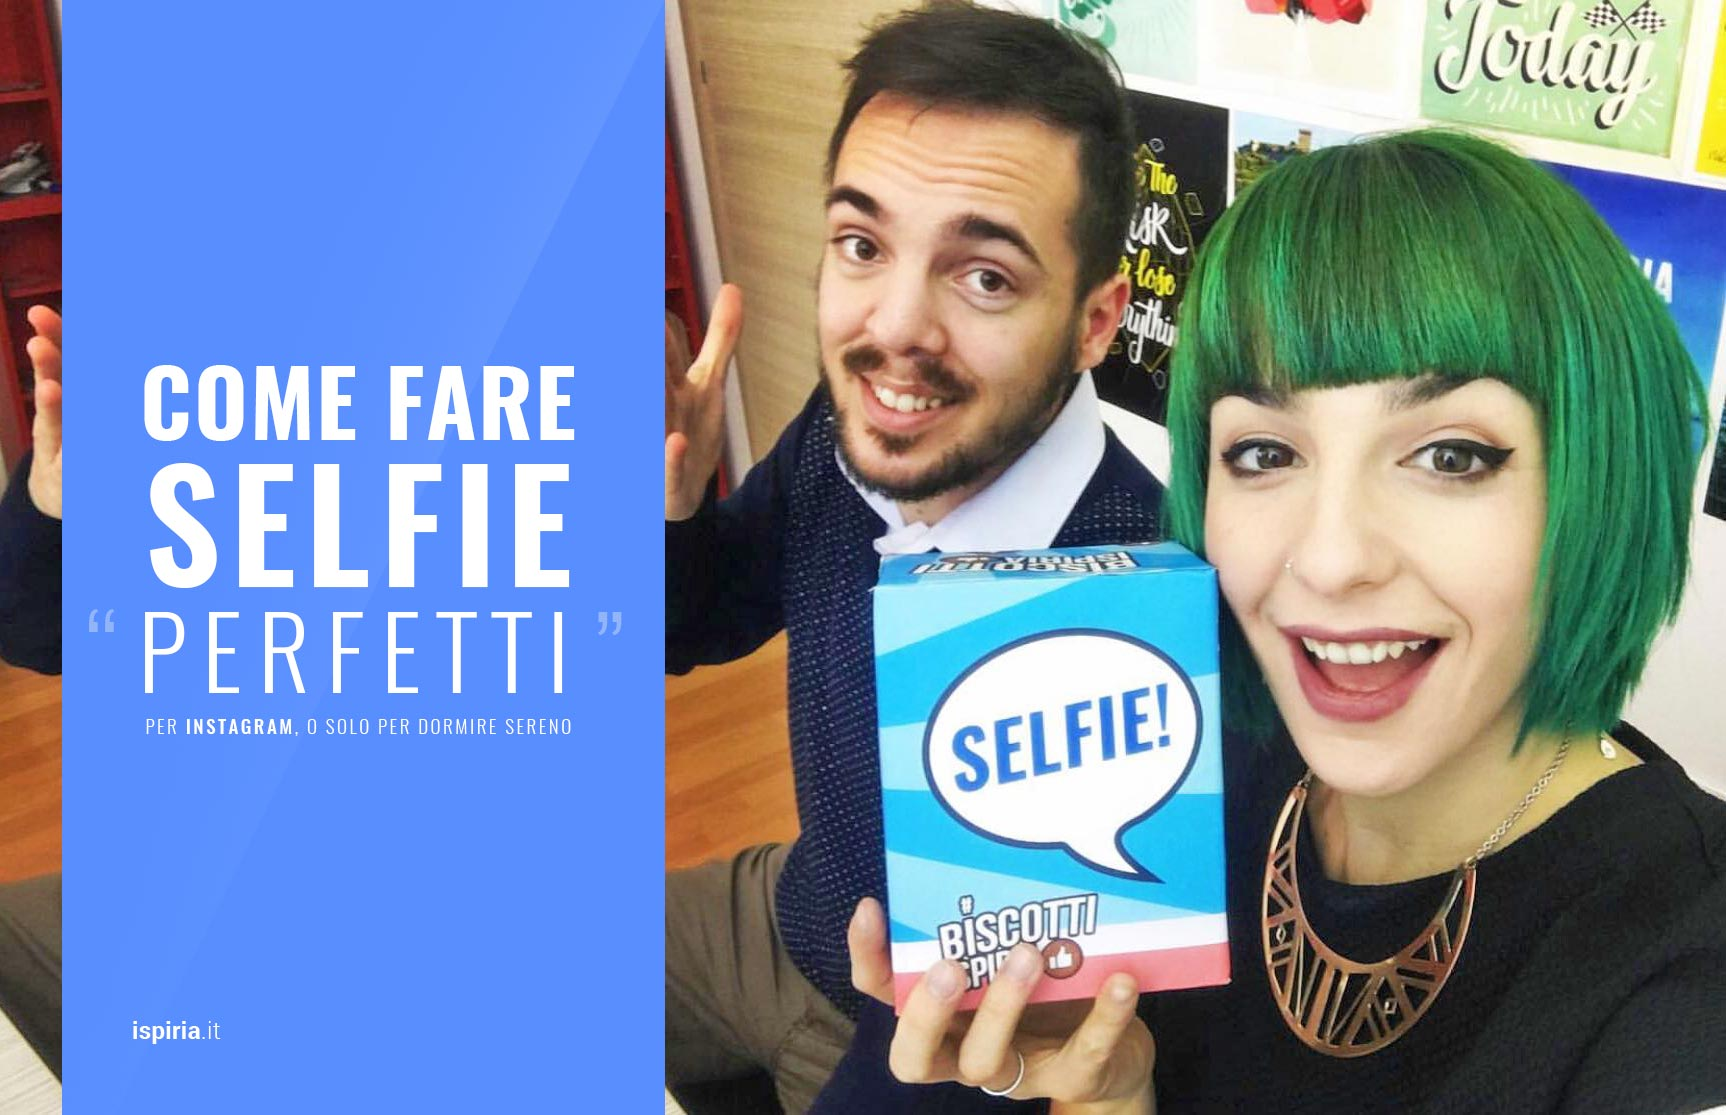 Come Fare Selfie Perfetti Per Instagram | Cosa Serve Per Fare Selfie Belli In Modo Assurdo